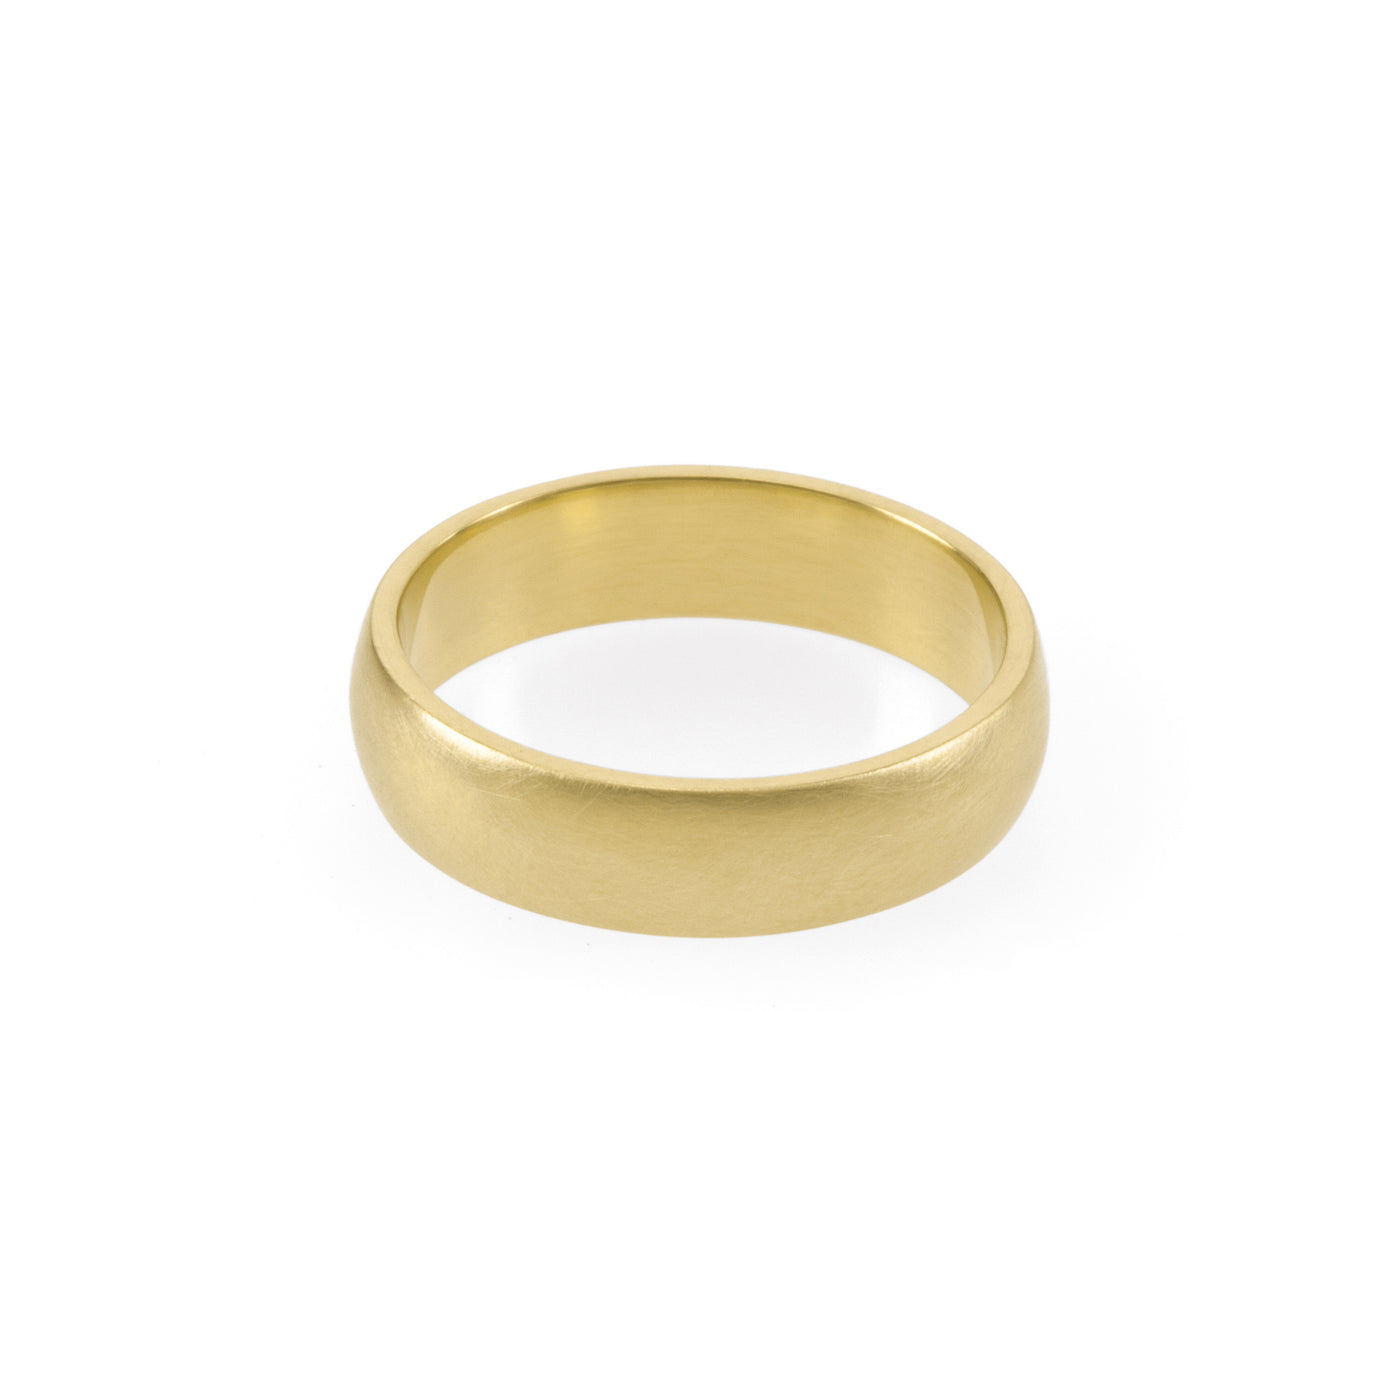 Ethical gold ring. This minimalist Domed Band is handmade in Cape Town in recycled gold from e-waste.